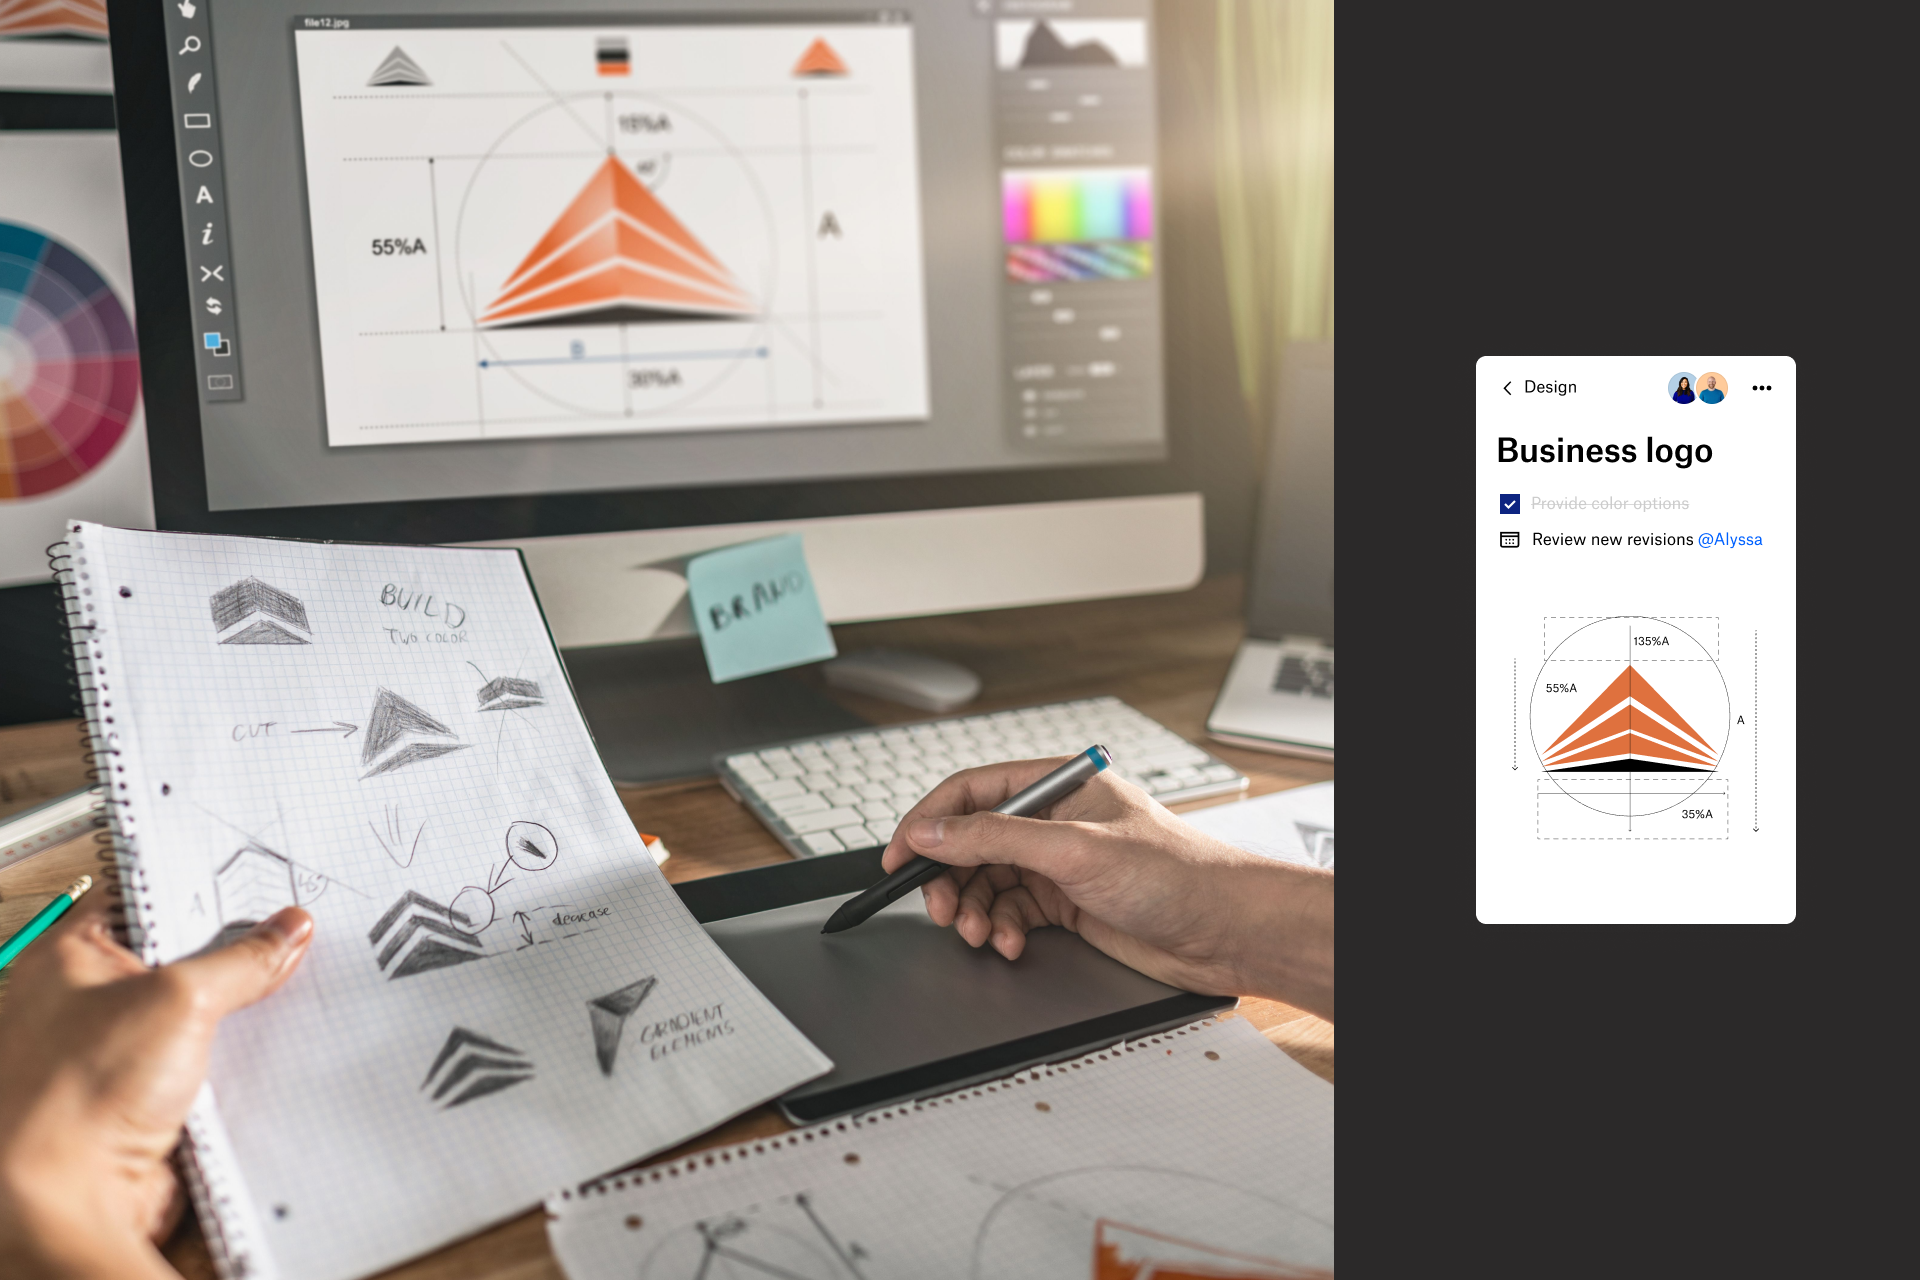 A person designing a business logo using Dropbox